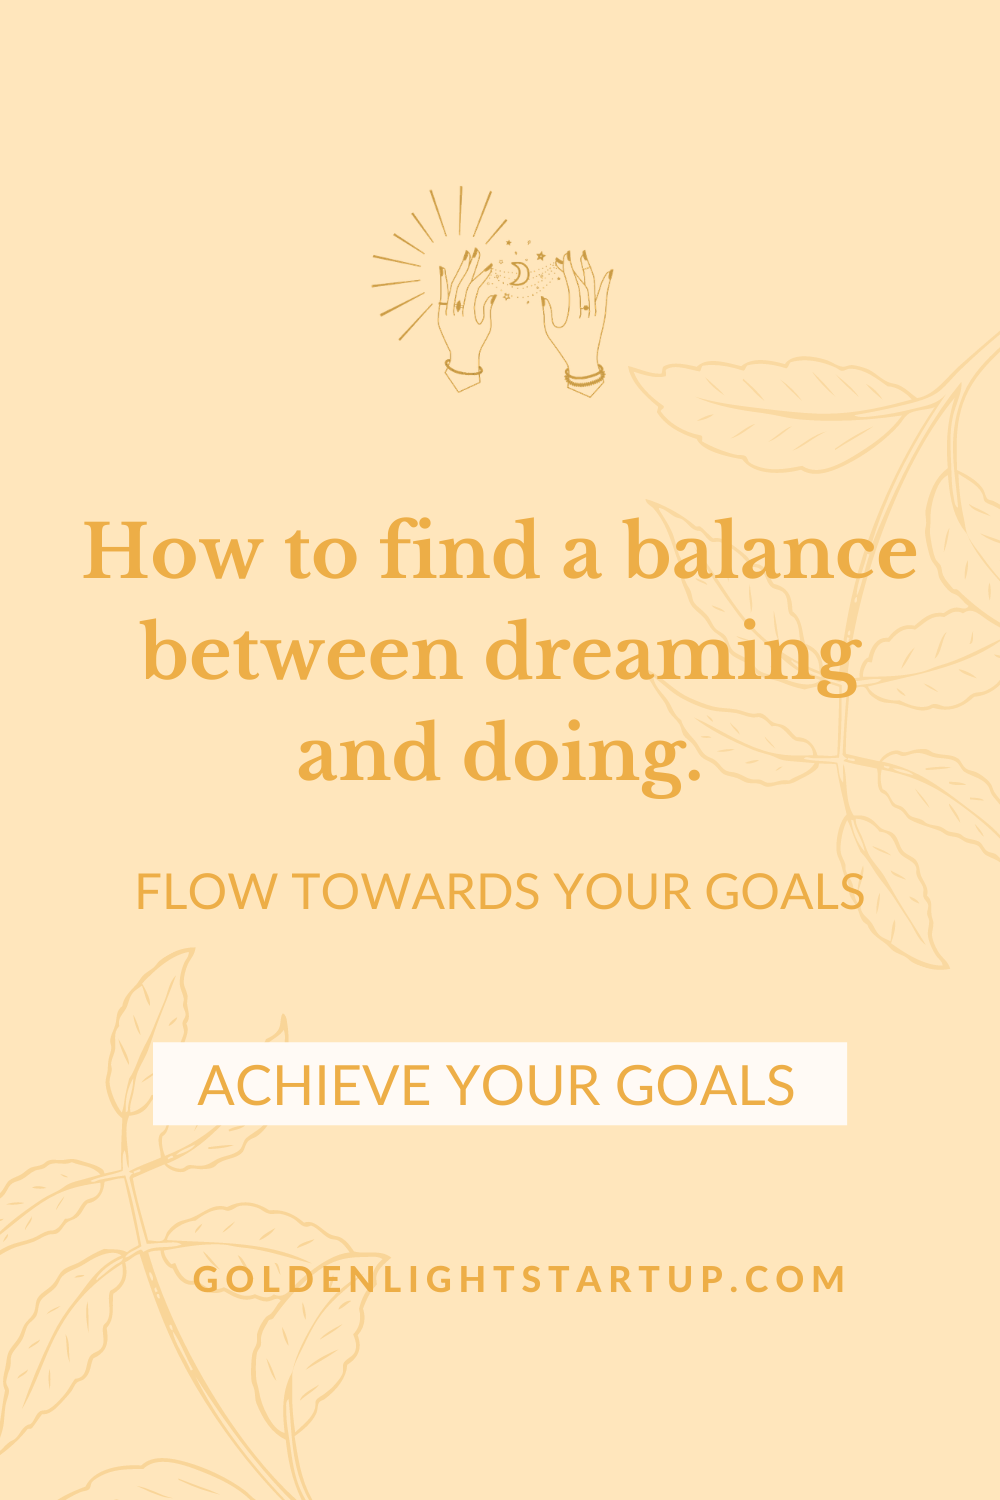 How To Flow Towards Your Goals